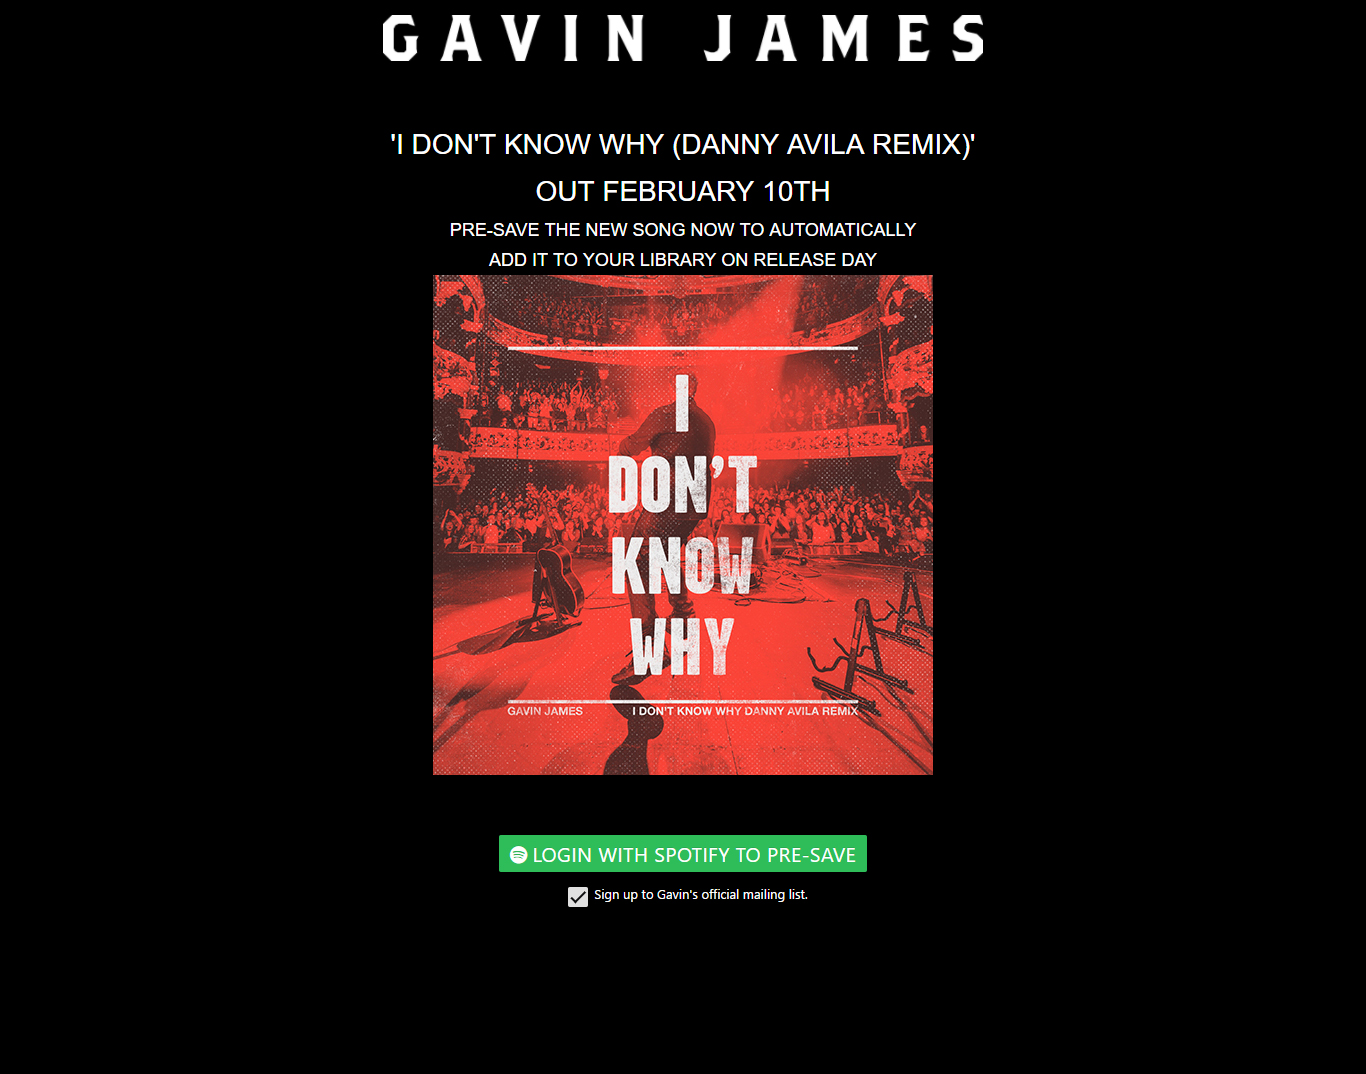 Gavin James Pre-Save for Spotify, Gavin James Presave For Spotify, Gavin James Spotify Pre-Save